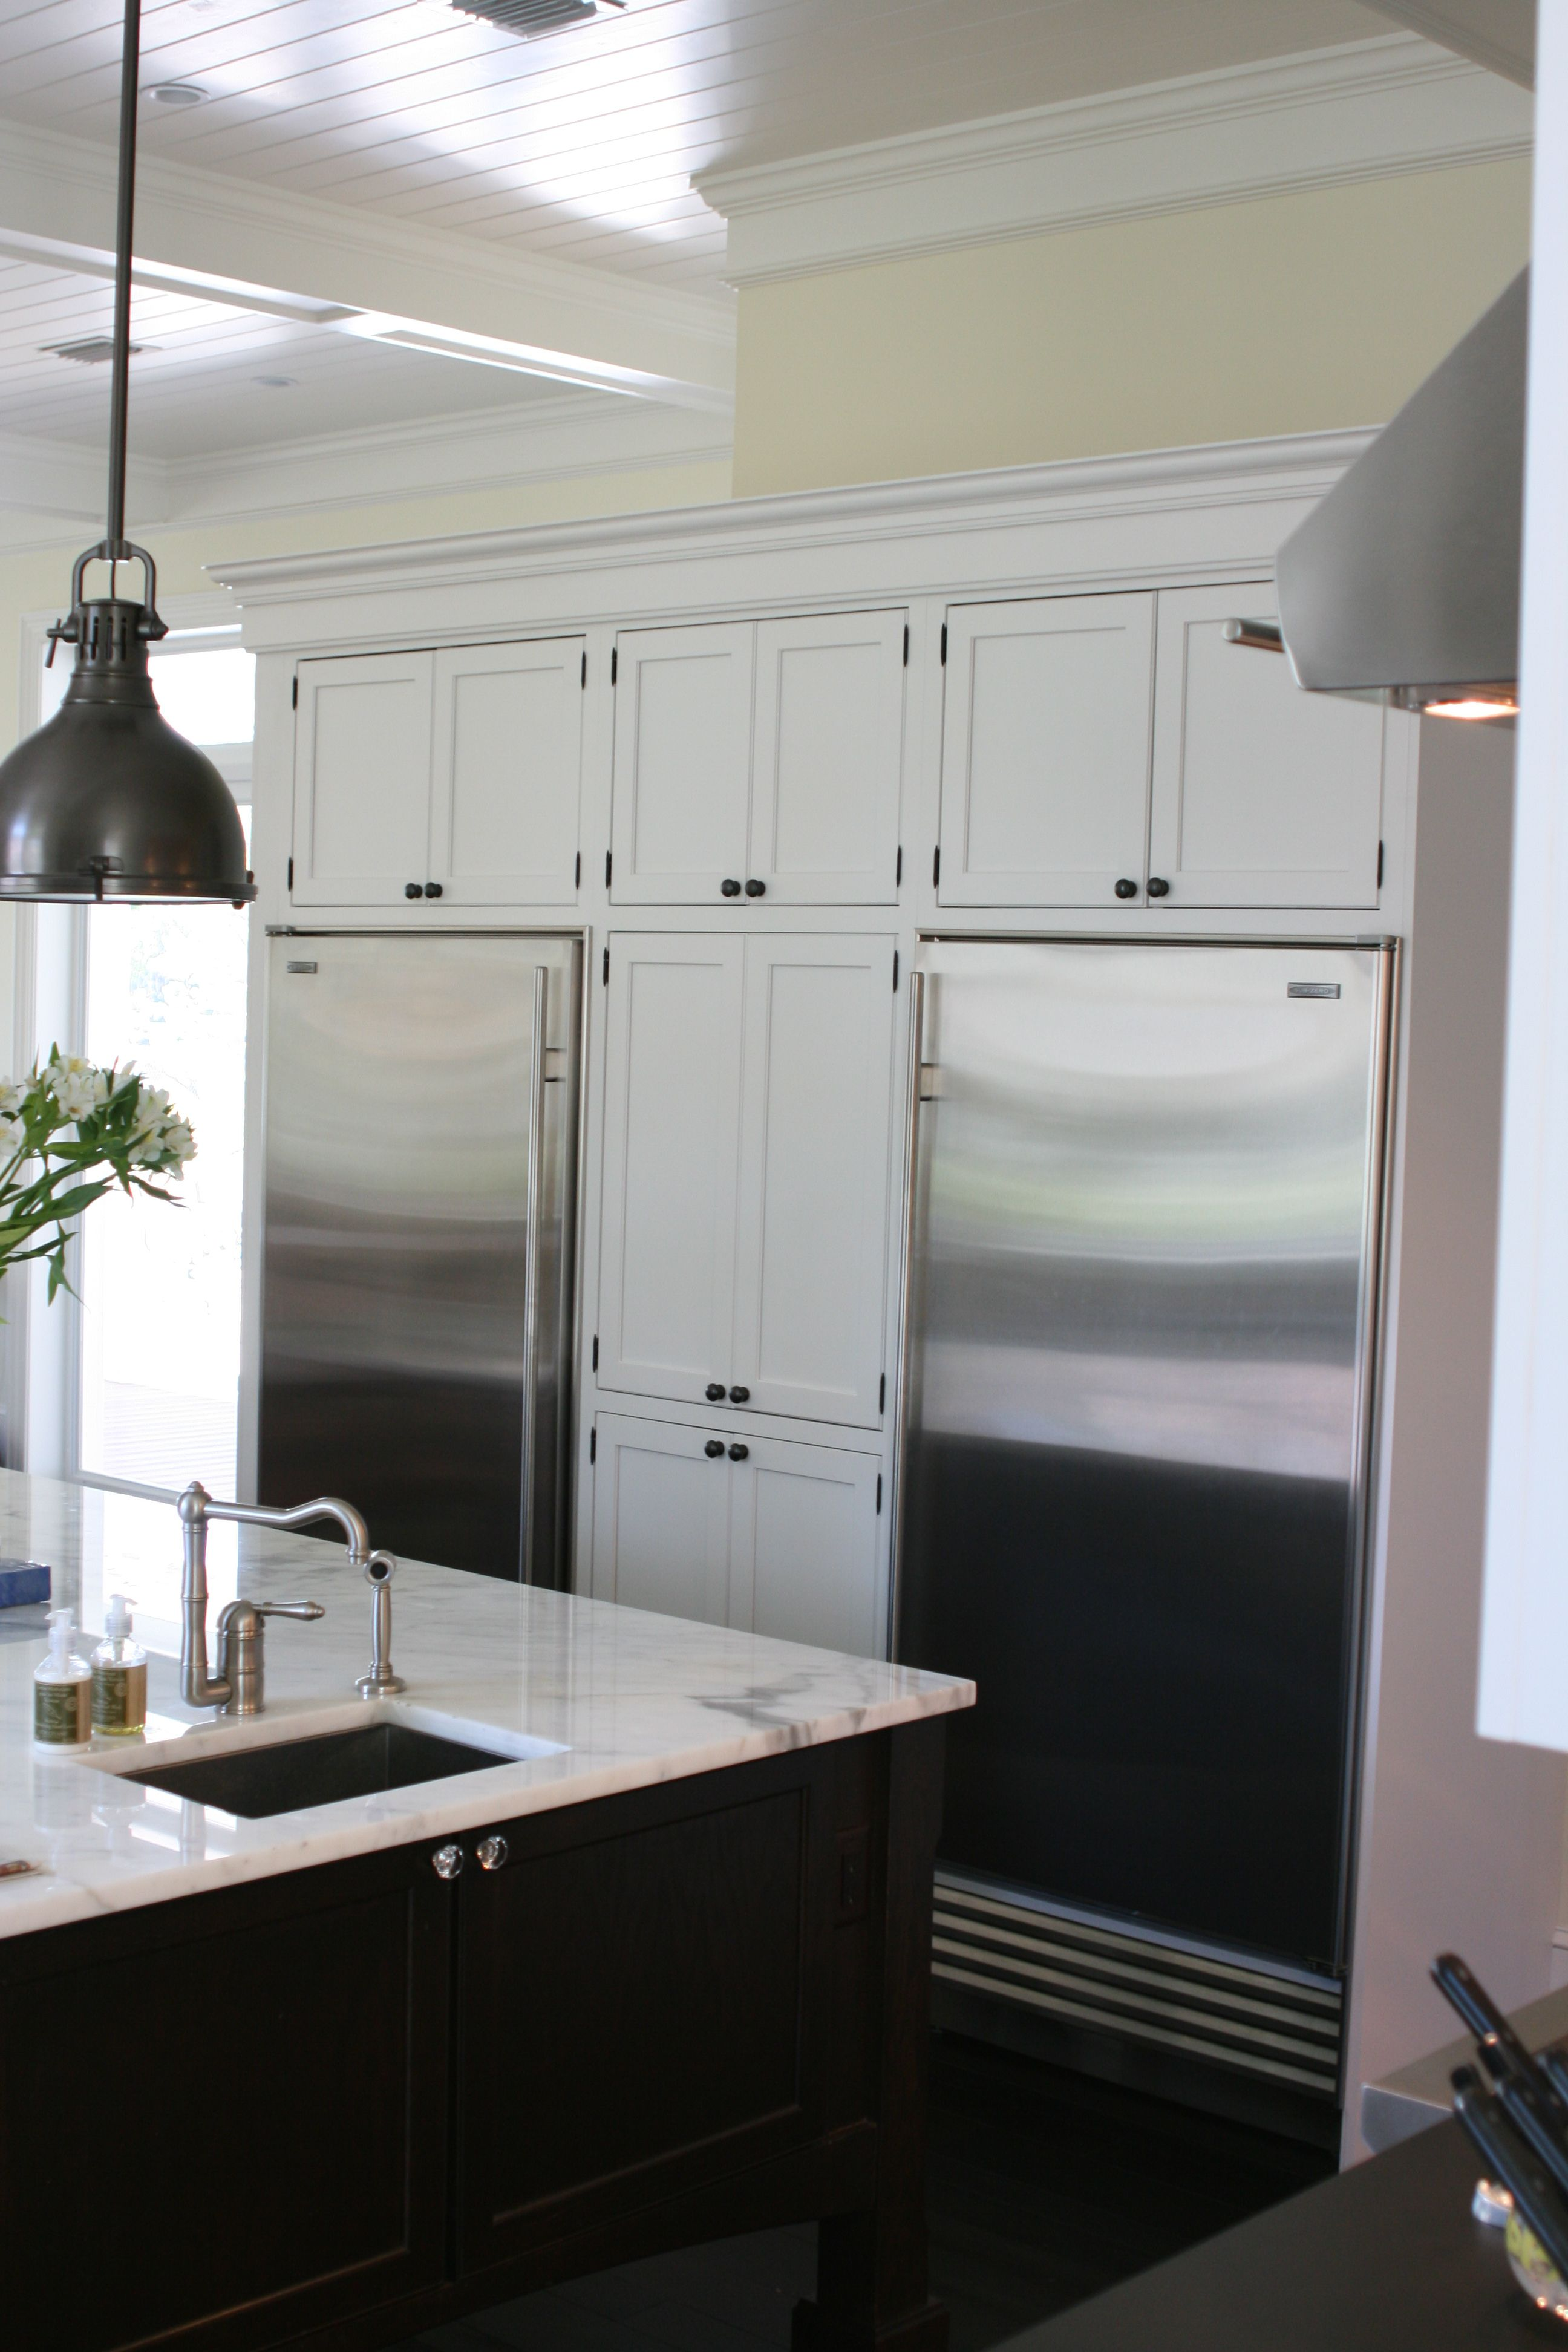 Delicieux Congratulations To The Cernitz Family For Your Recent Purchase Of Custom  Cabinetry With Eleet.